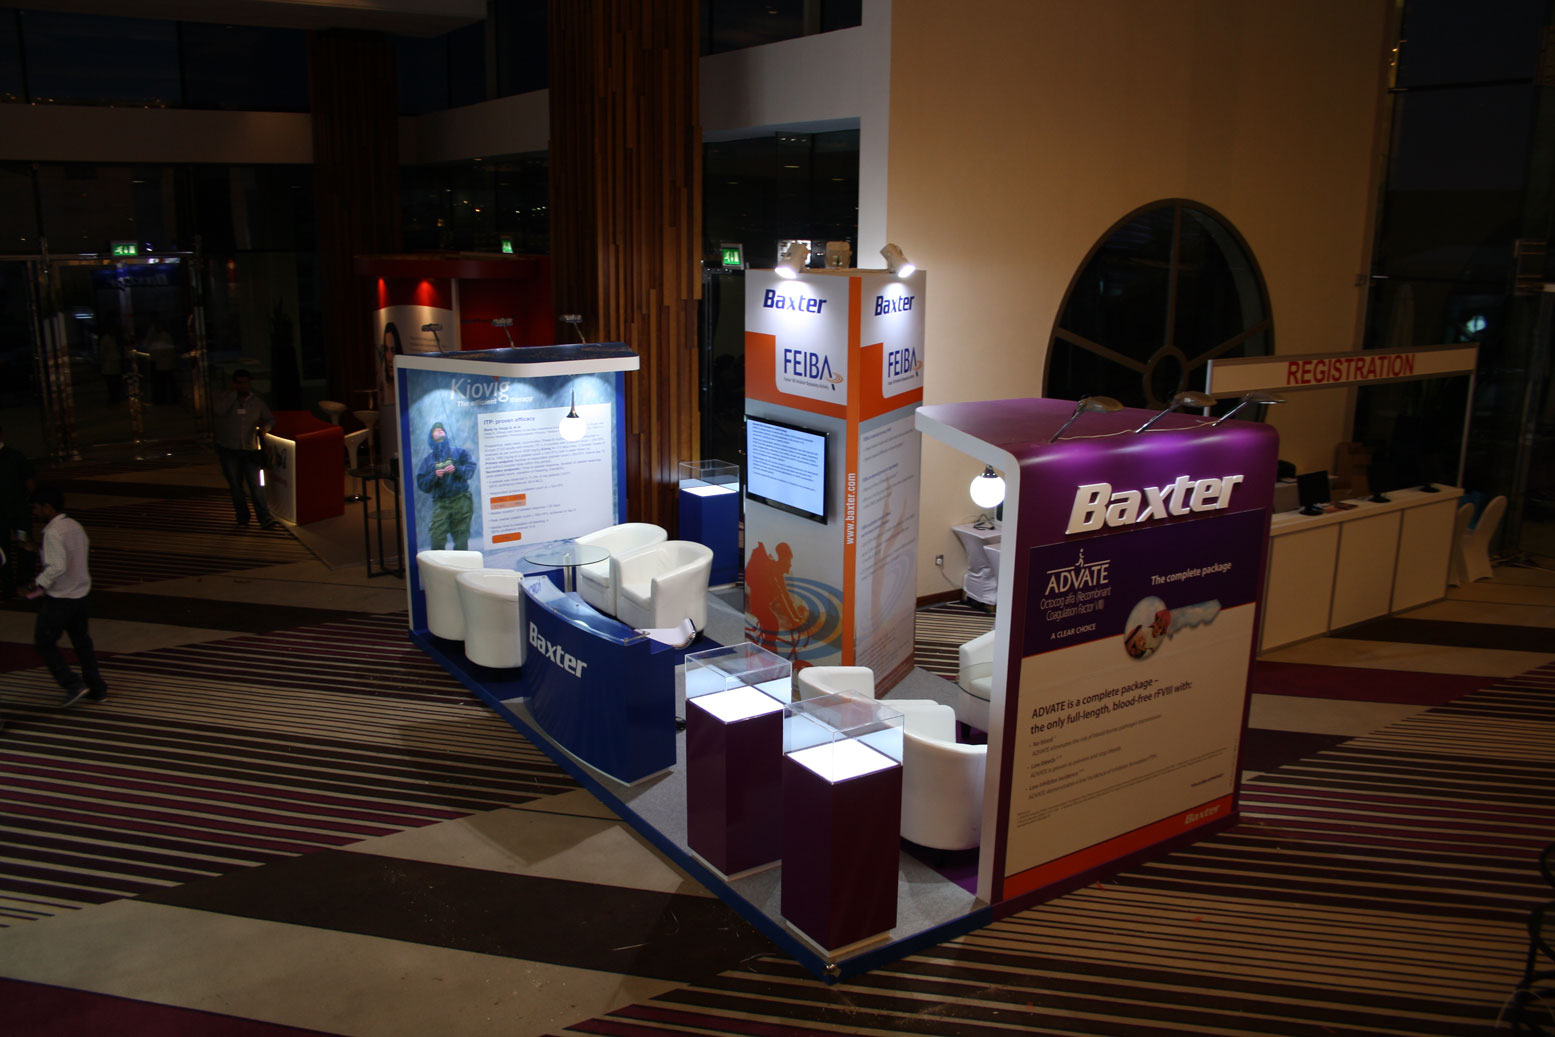 Baxter Exhibition Stand 3 by Cornerstone